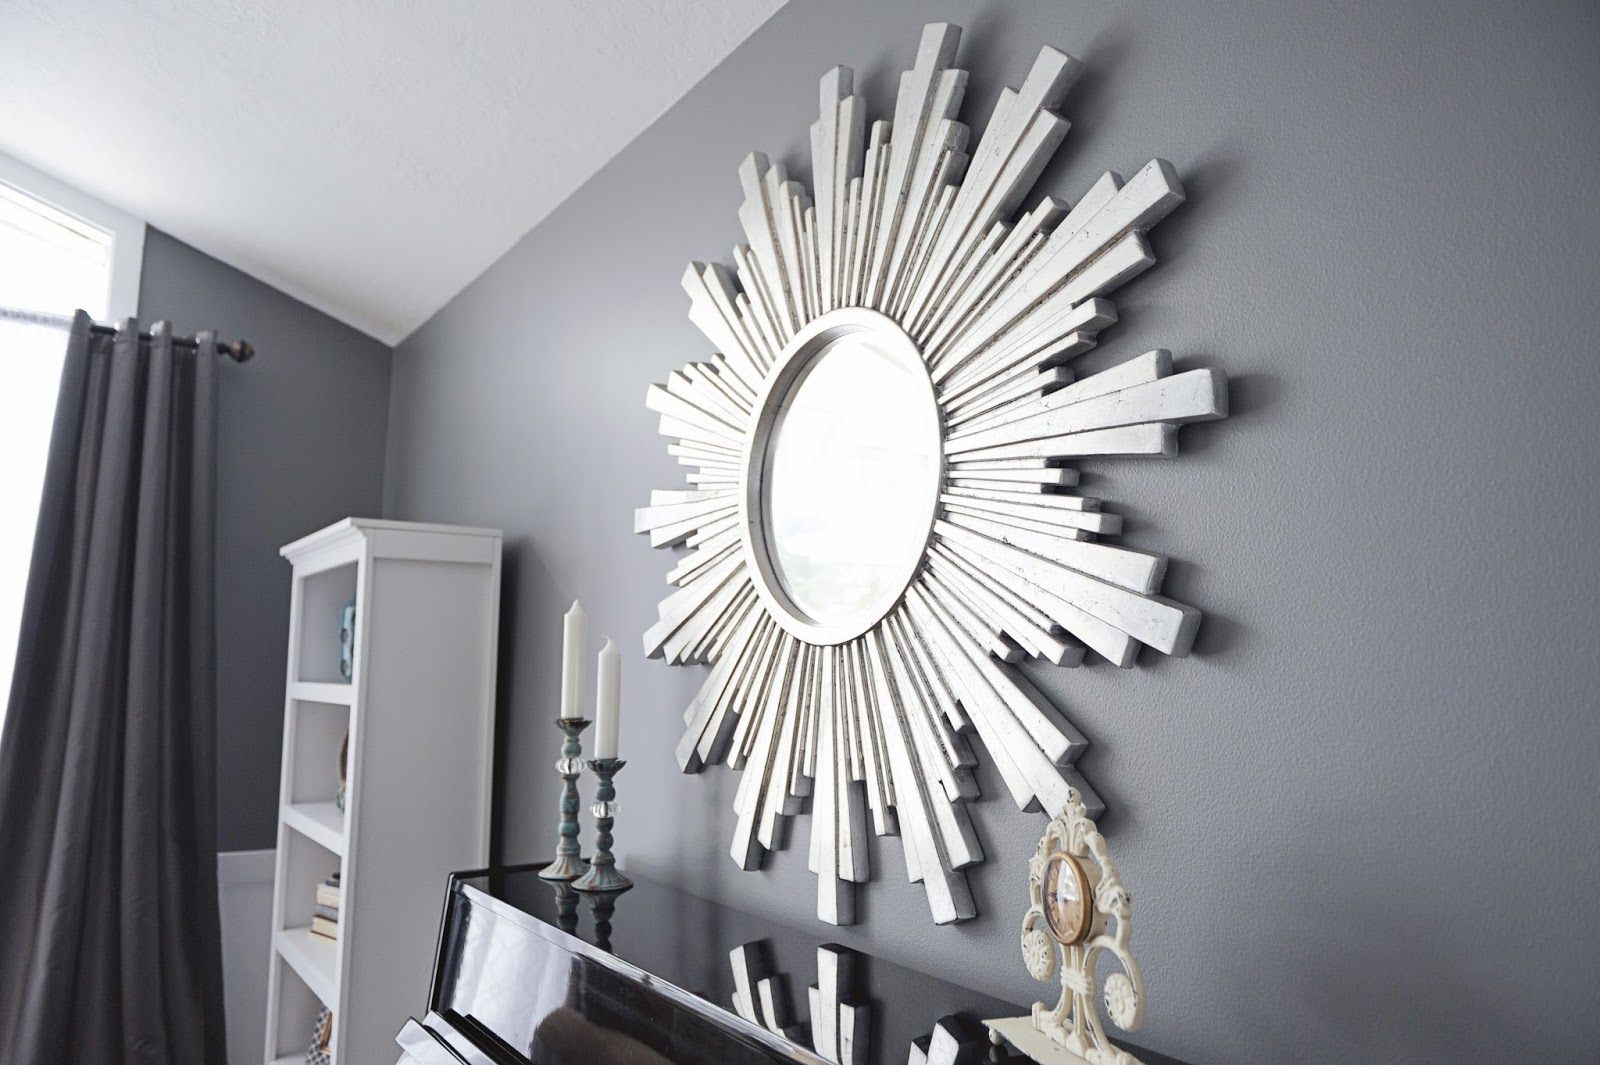 sunburst mirror, ballard design, gardner village, down to earth, Gray, white, black, silver, gold, zgallerie, homegoods, ikea, tjmaxx, marshalls, world market, ross, ksl, overstock, tuesday morning, sherwin williams, cityscape, turquoise, floral arrangement, marble, tan, curtains, sheer curtains, contemporary, interiors, interior design, staging, salt lake city, utah, sandy, design, blog, blogger, studio 7, studio 7 interior design